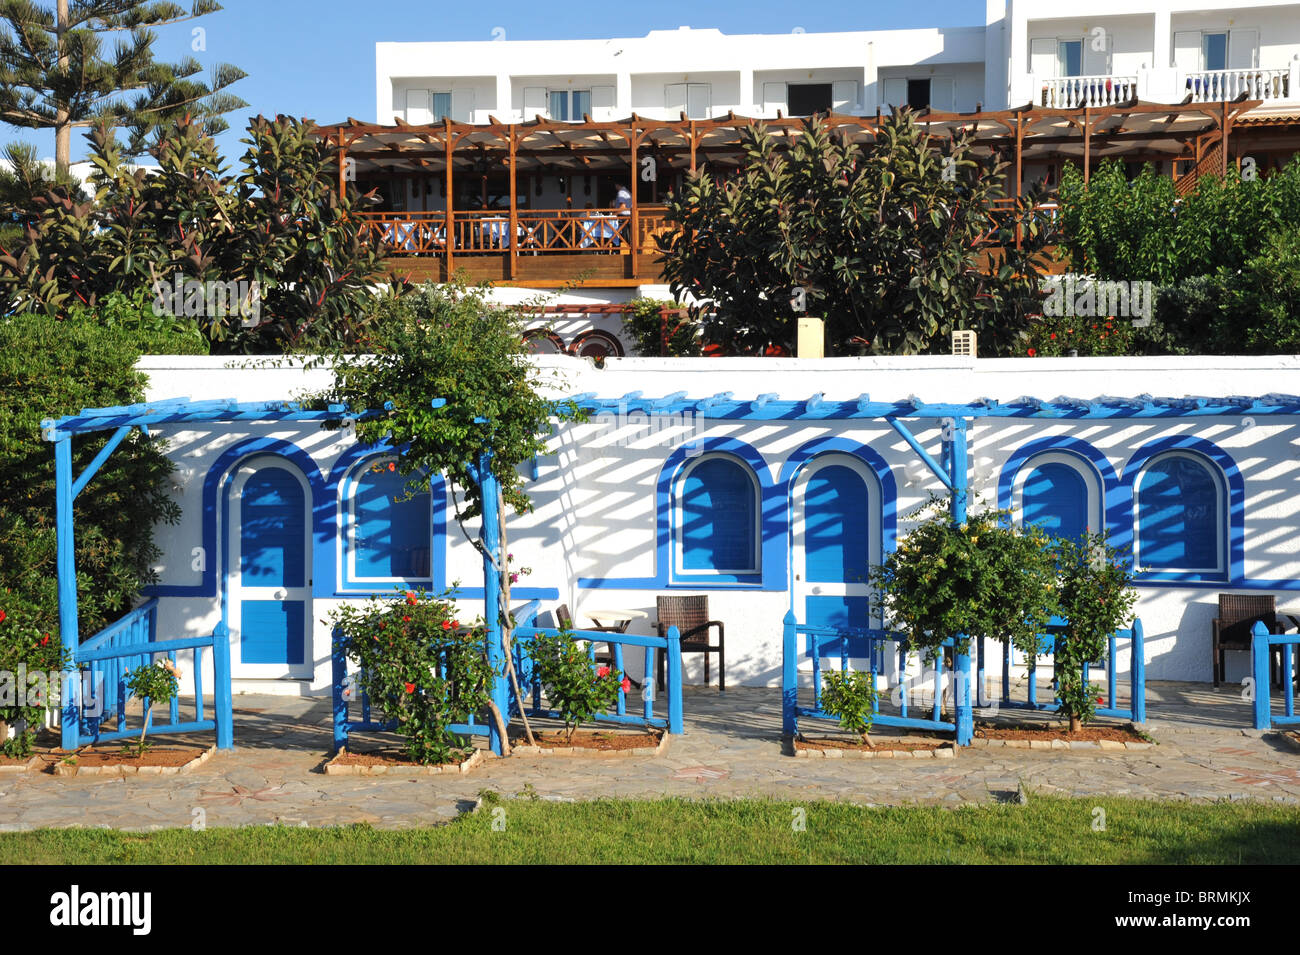 Traditional Greek style bungalow holiday hotel accomodation. Image taken in Crete, Greece - Stock Image